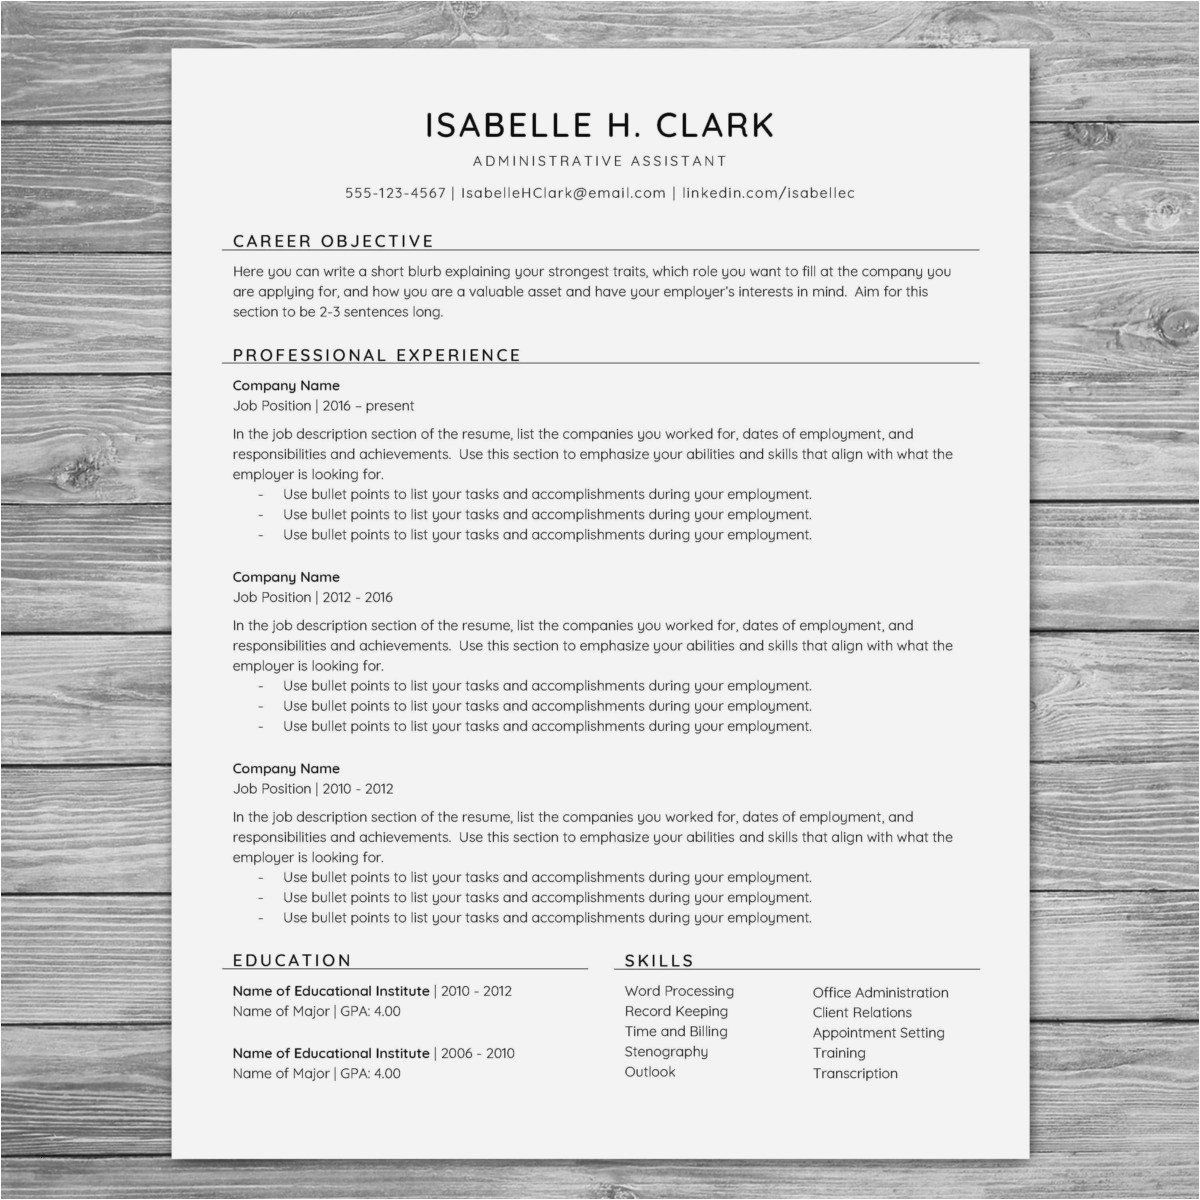 listing publications on resume beautiful grapher ideas examples objective administrative Resume Listing Publications On A Resume Examples